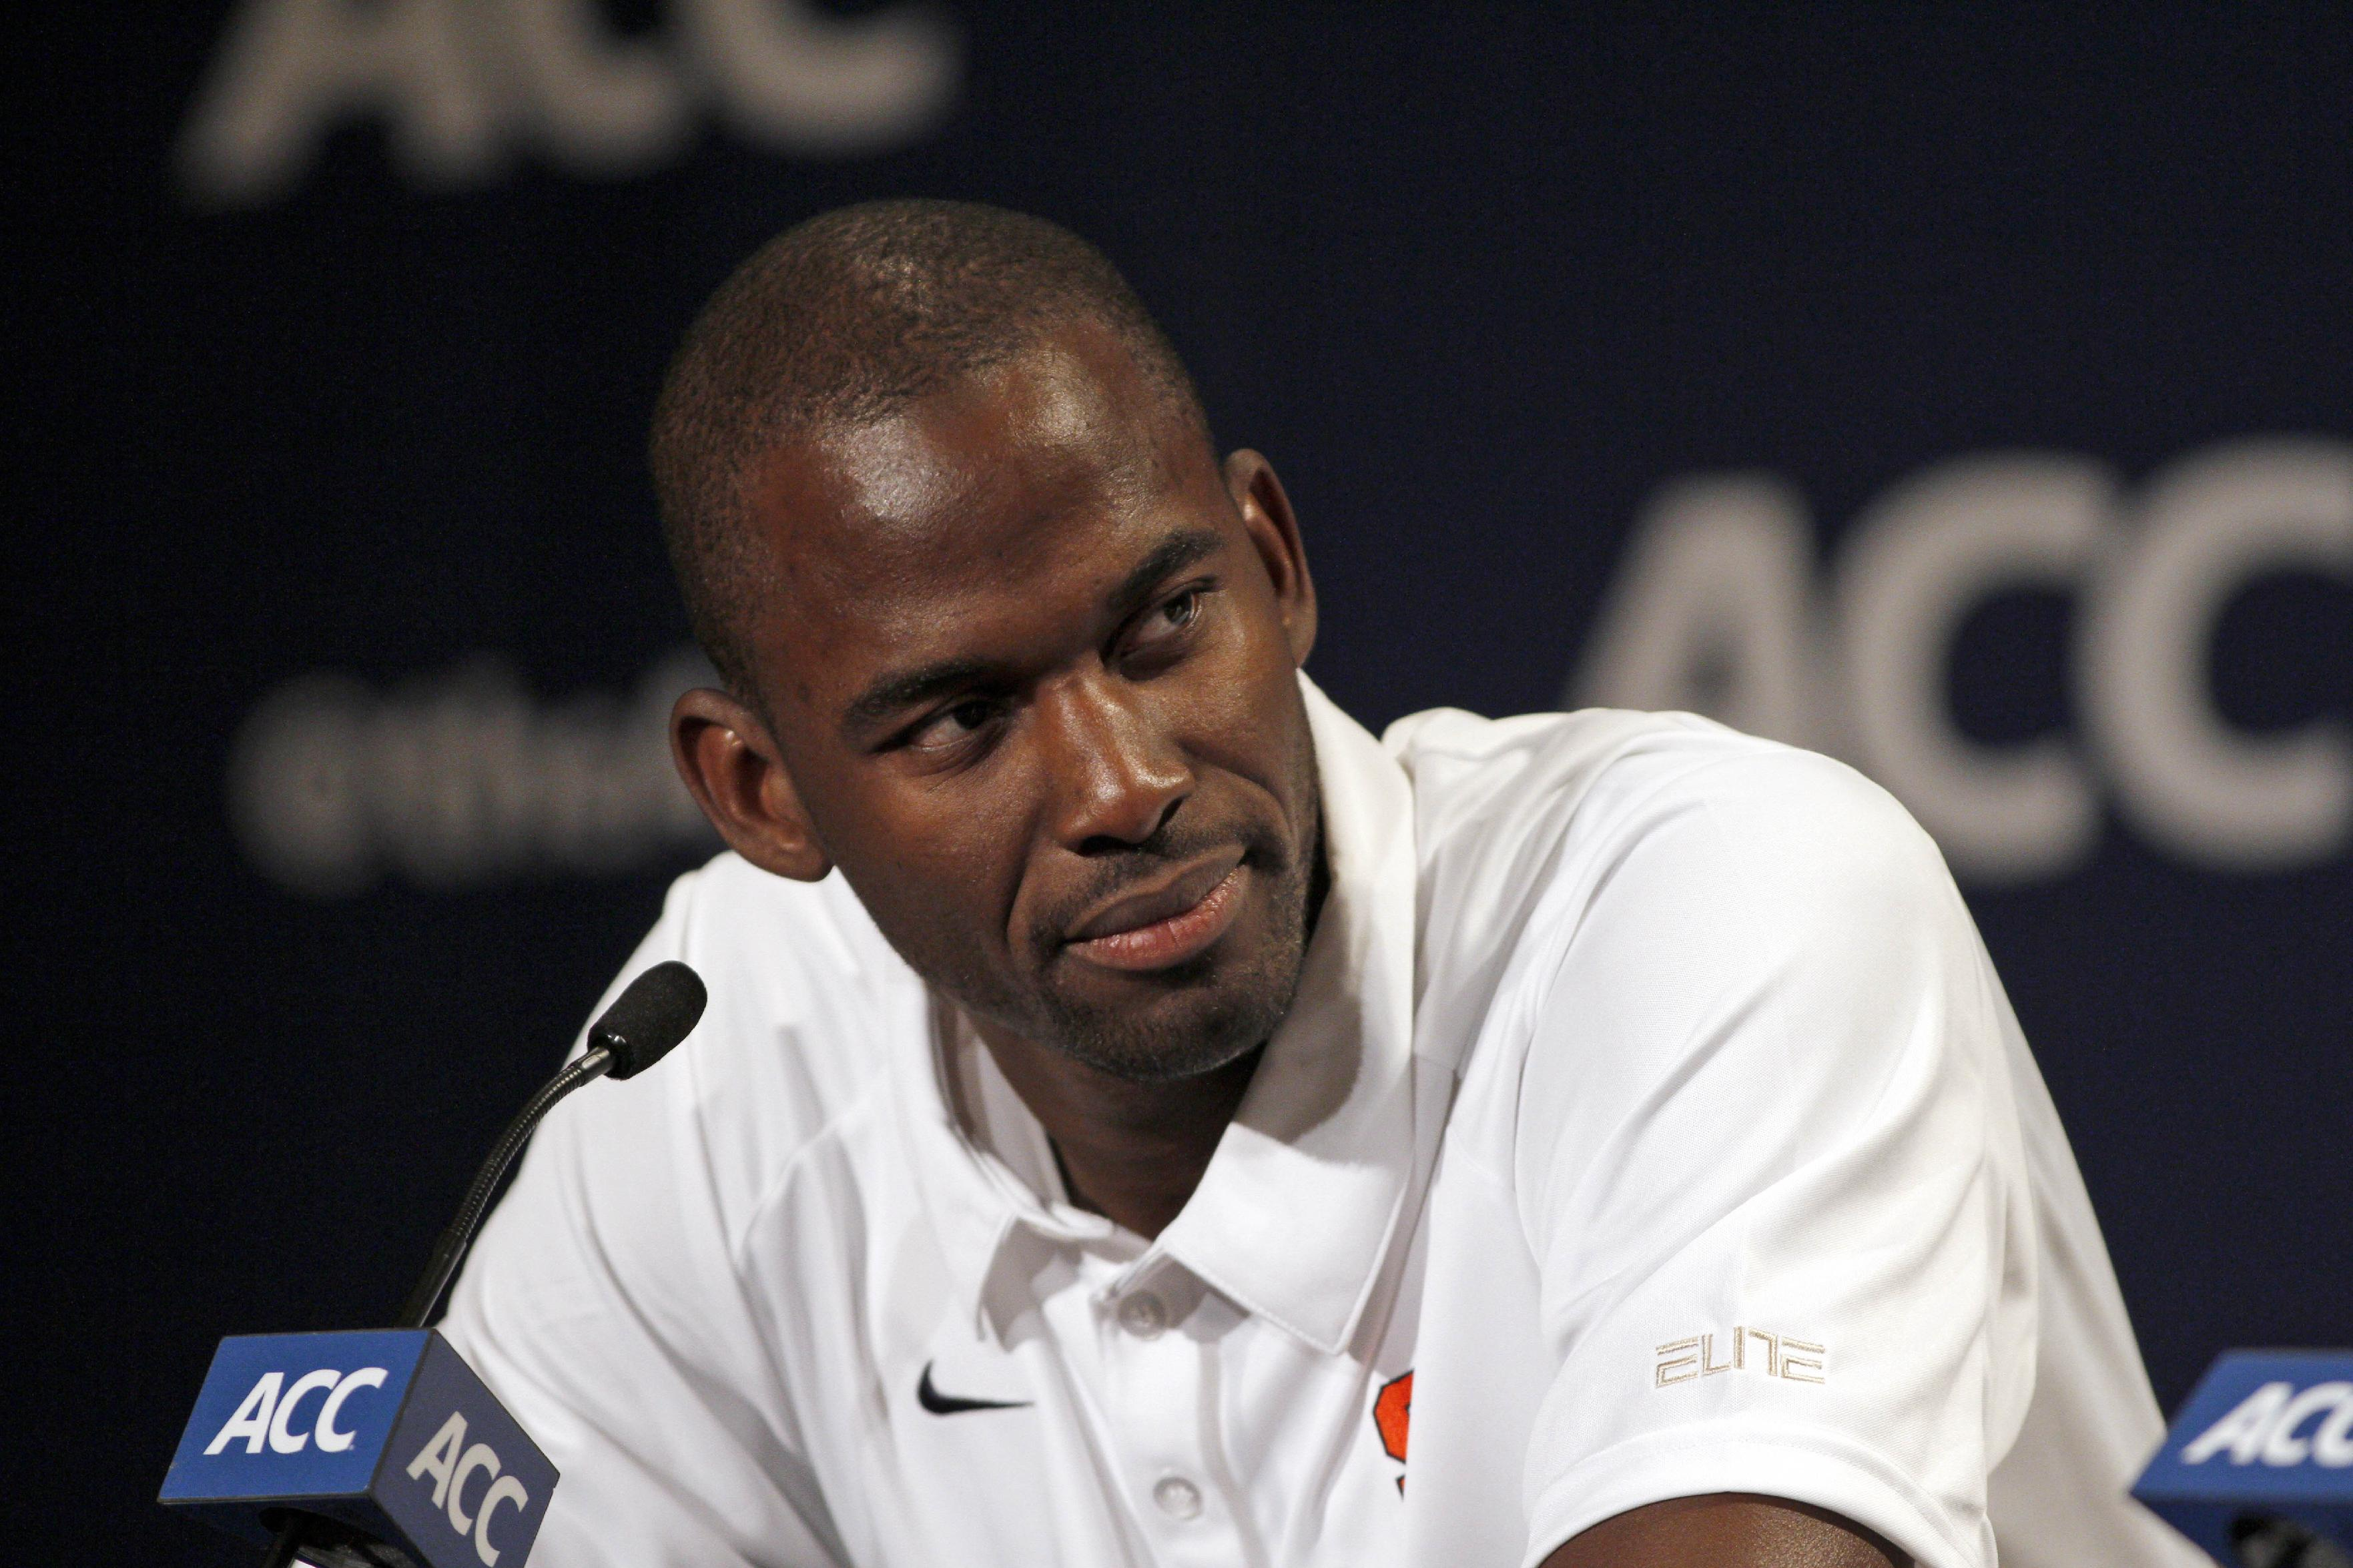 Syracuse basketball player Baye Moussa Keita answers questions at a press conference during the NCAA college basketball Atlantic Coast Conference media day in Charlotte, N.C., Wednesday, Oct, 16, 2013